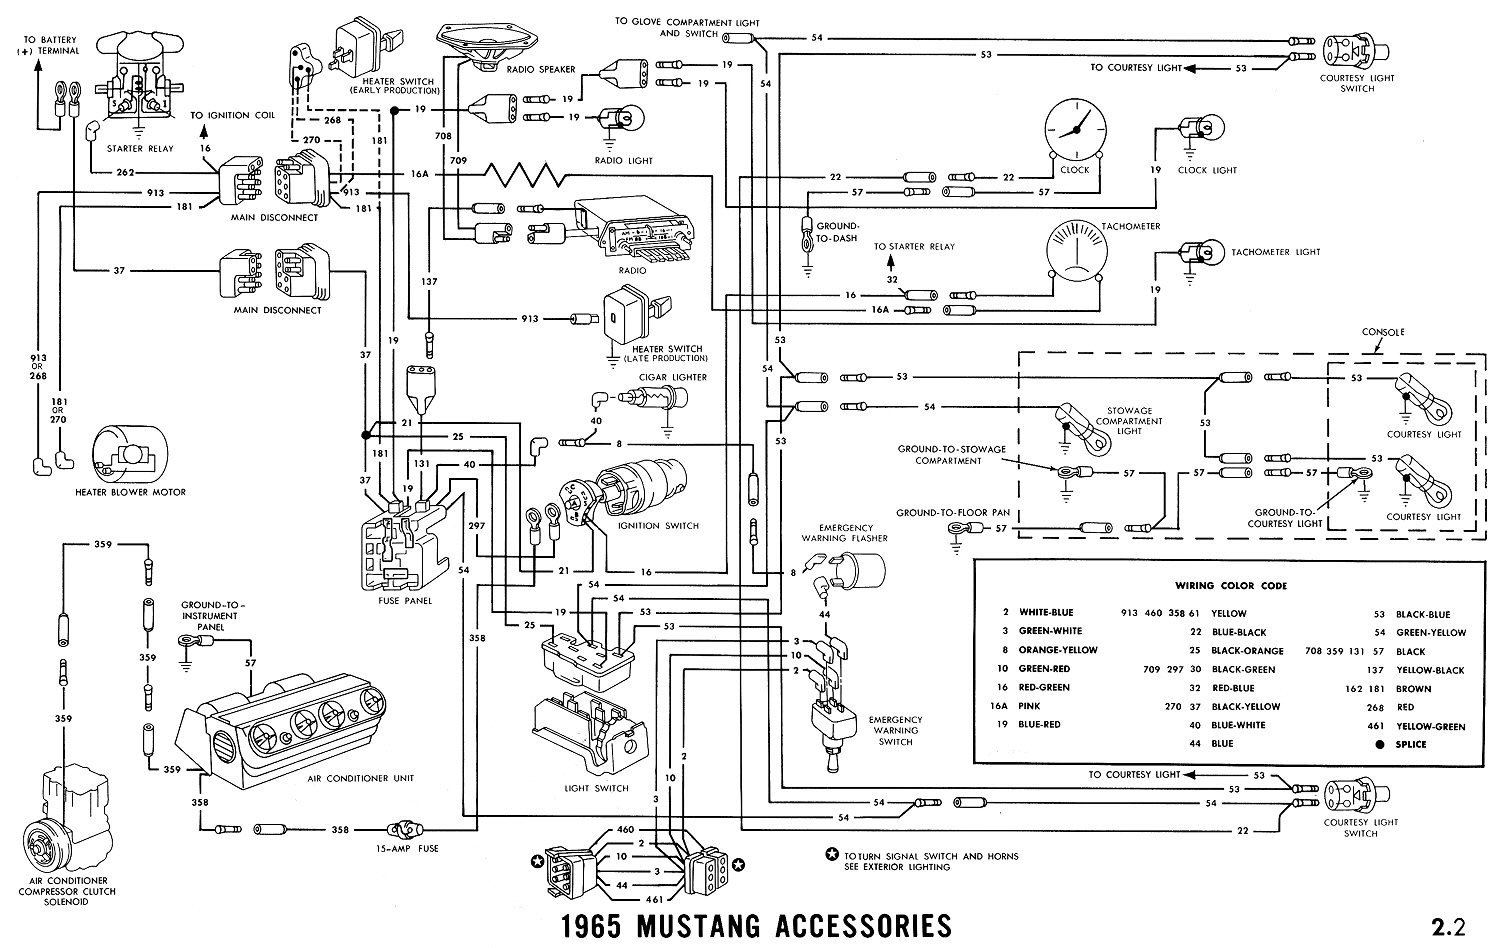 1965 Mustang Wiring Diagrams - Average Joe Restoration on 1970 ford ignition coil, 1970 ford charging system diagram, 1970 ford ignition system,